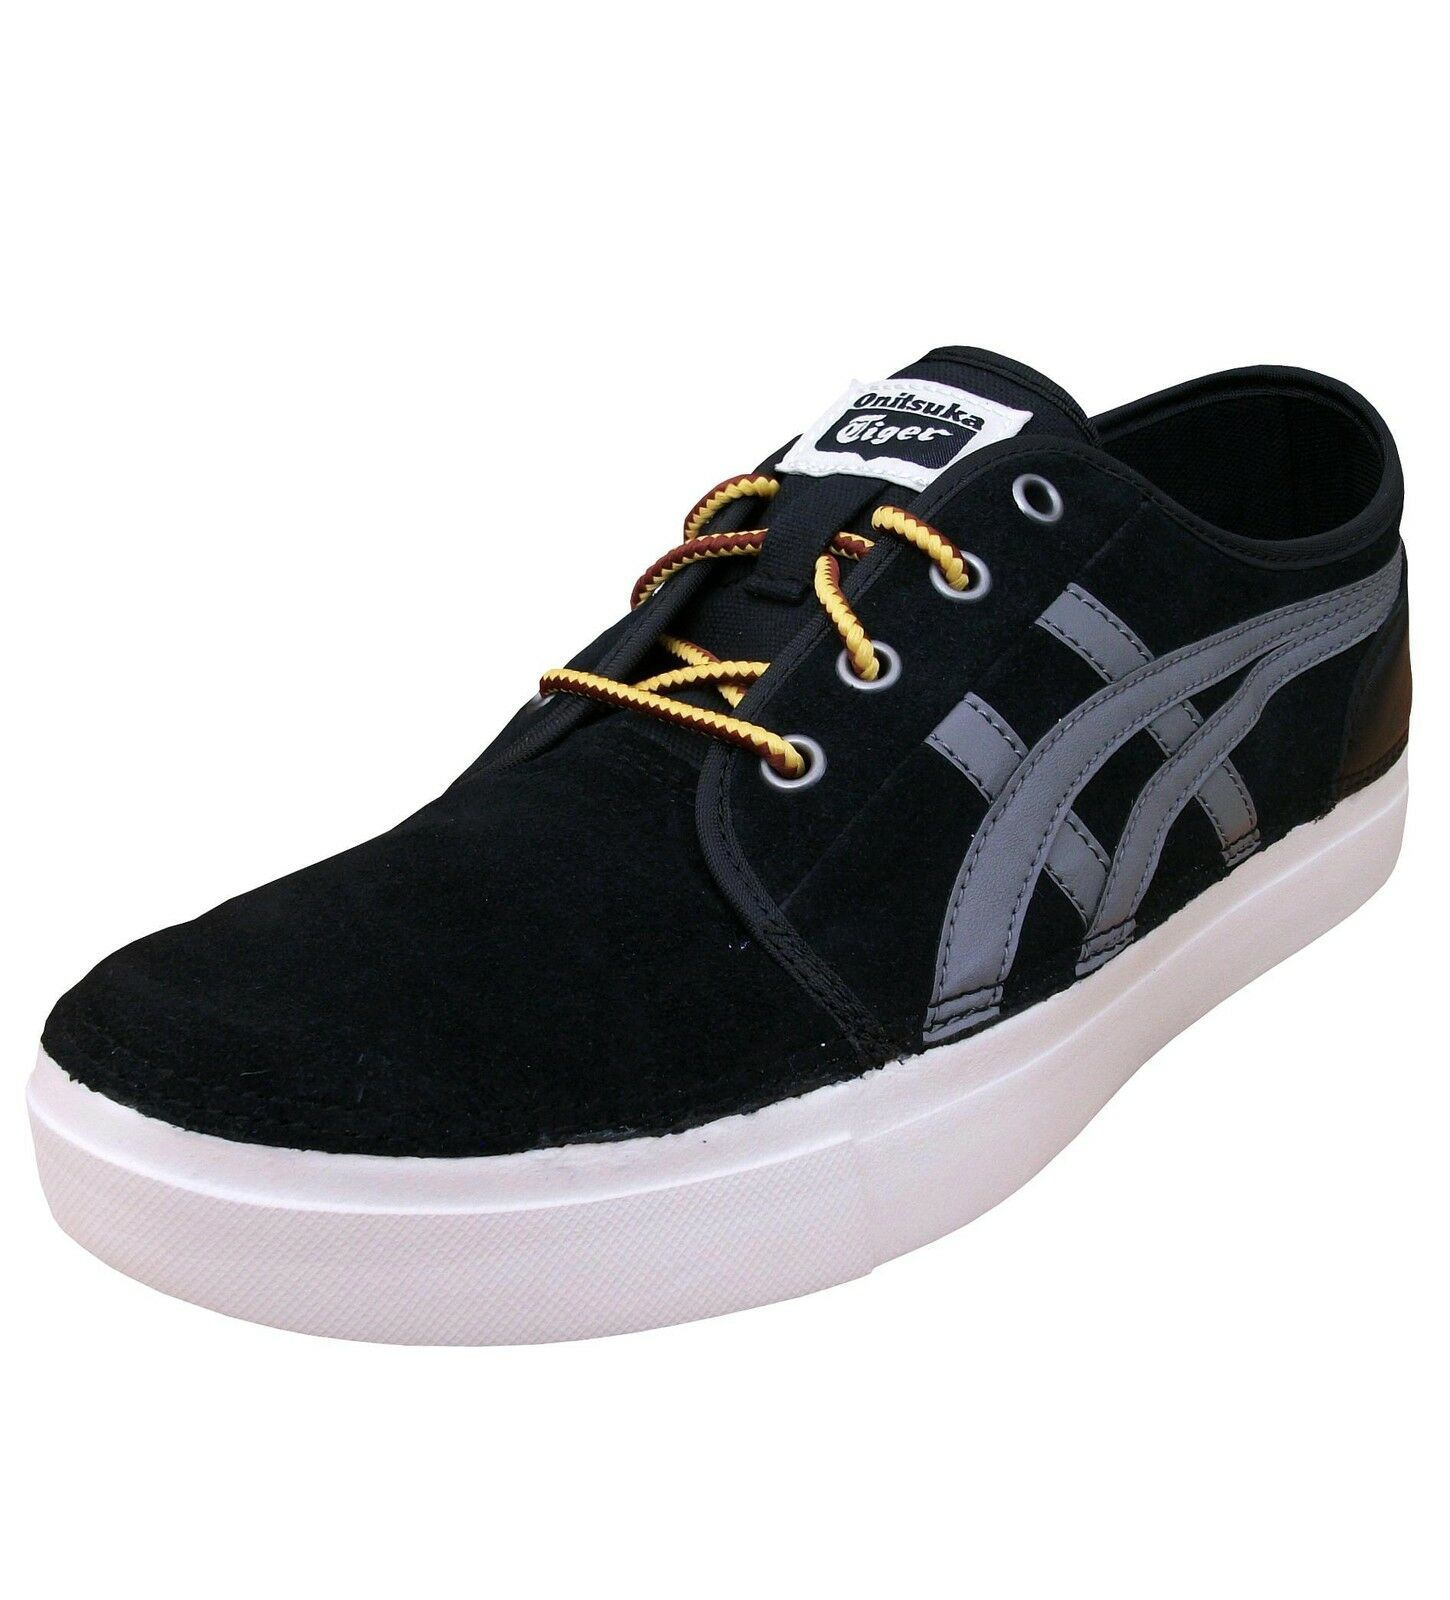 Asics Hombre ONITSUKA TIGER claverton Ante Zapatillas Retro Negro  best-selling model of the brand